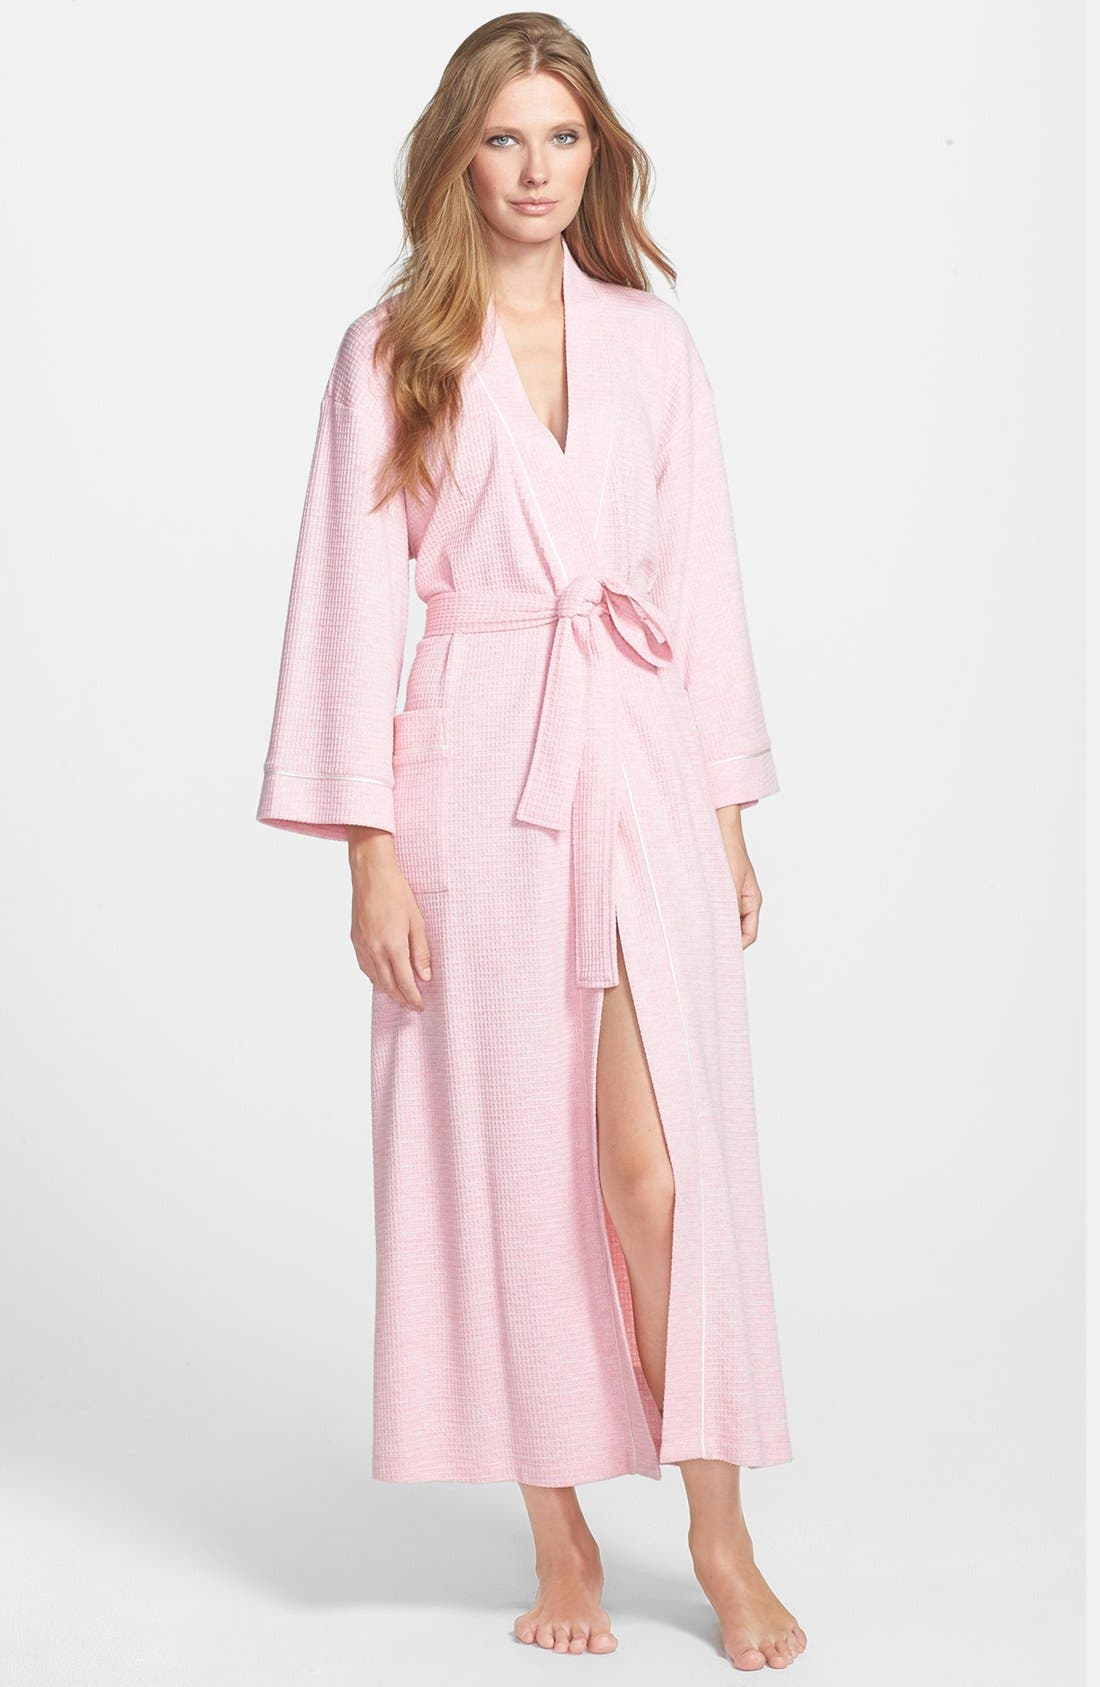 Alternate Image 1 Selected - Carole Hochman Designs 'Blown Away' Robe